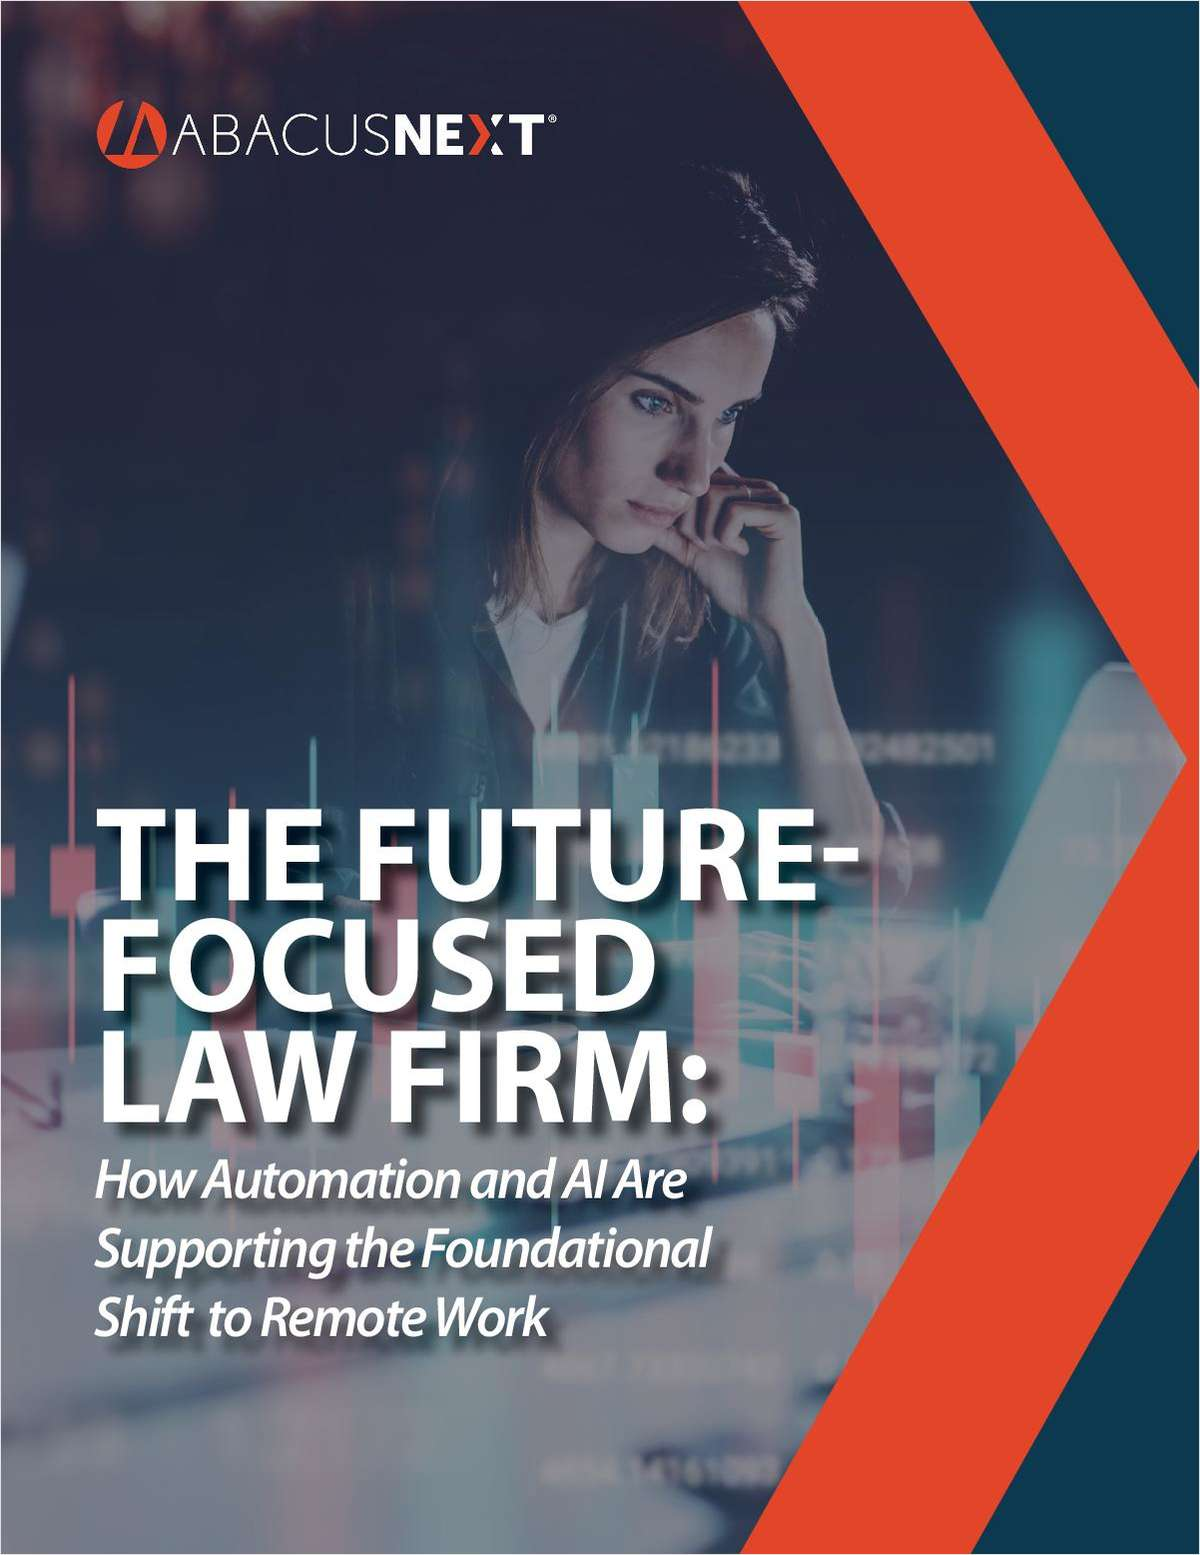 The Future-Focused Law Firm